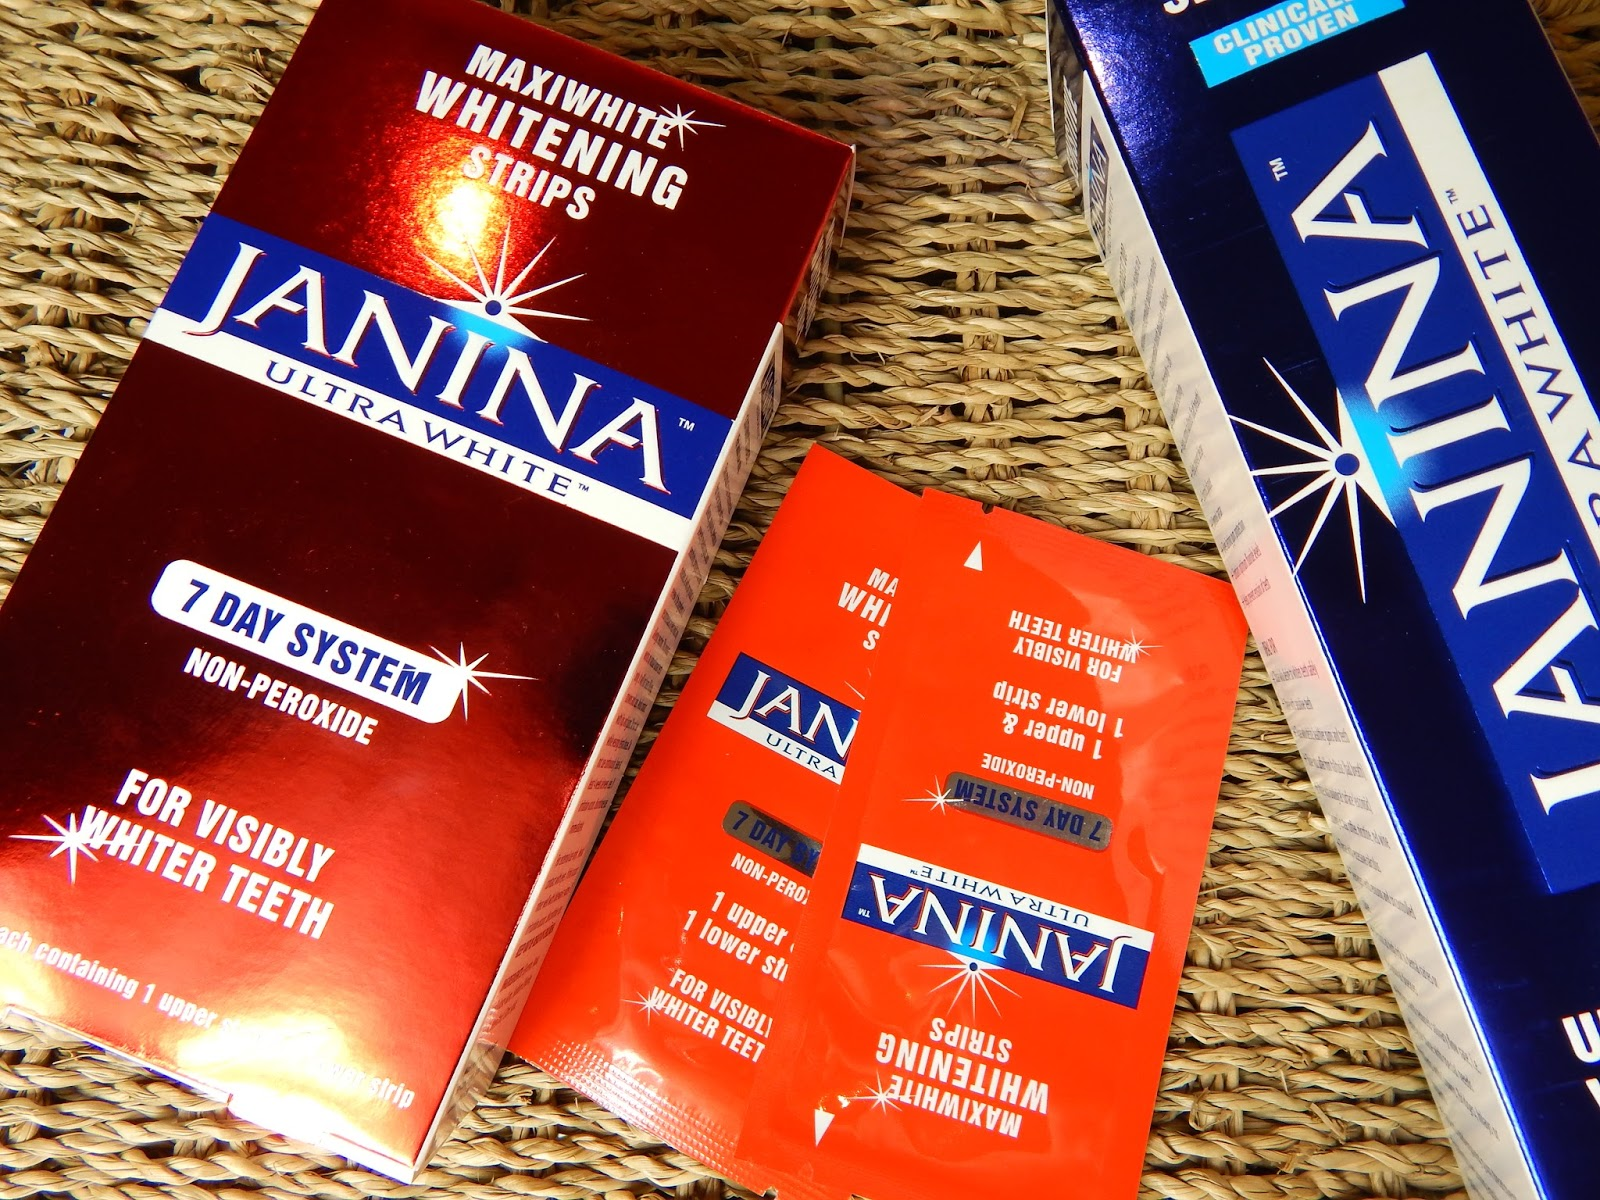 Janina Teeth Whitening Toothpaste and Whitening Strips